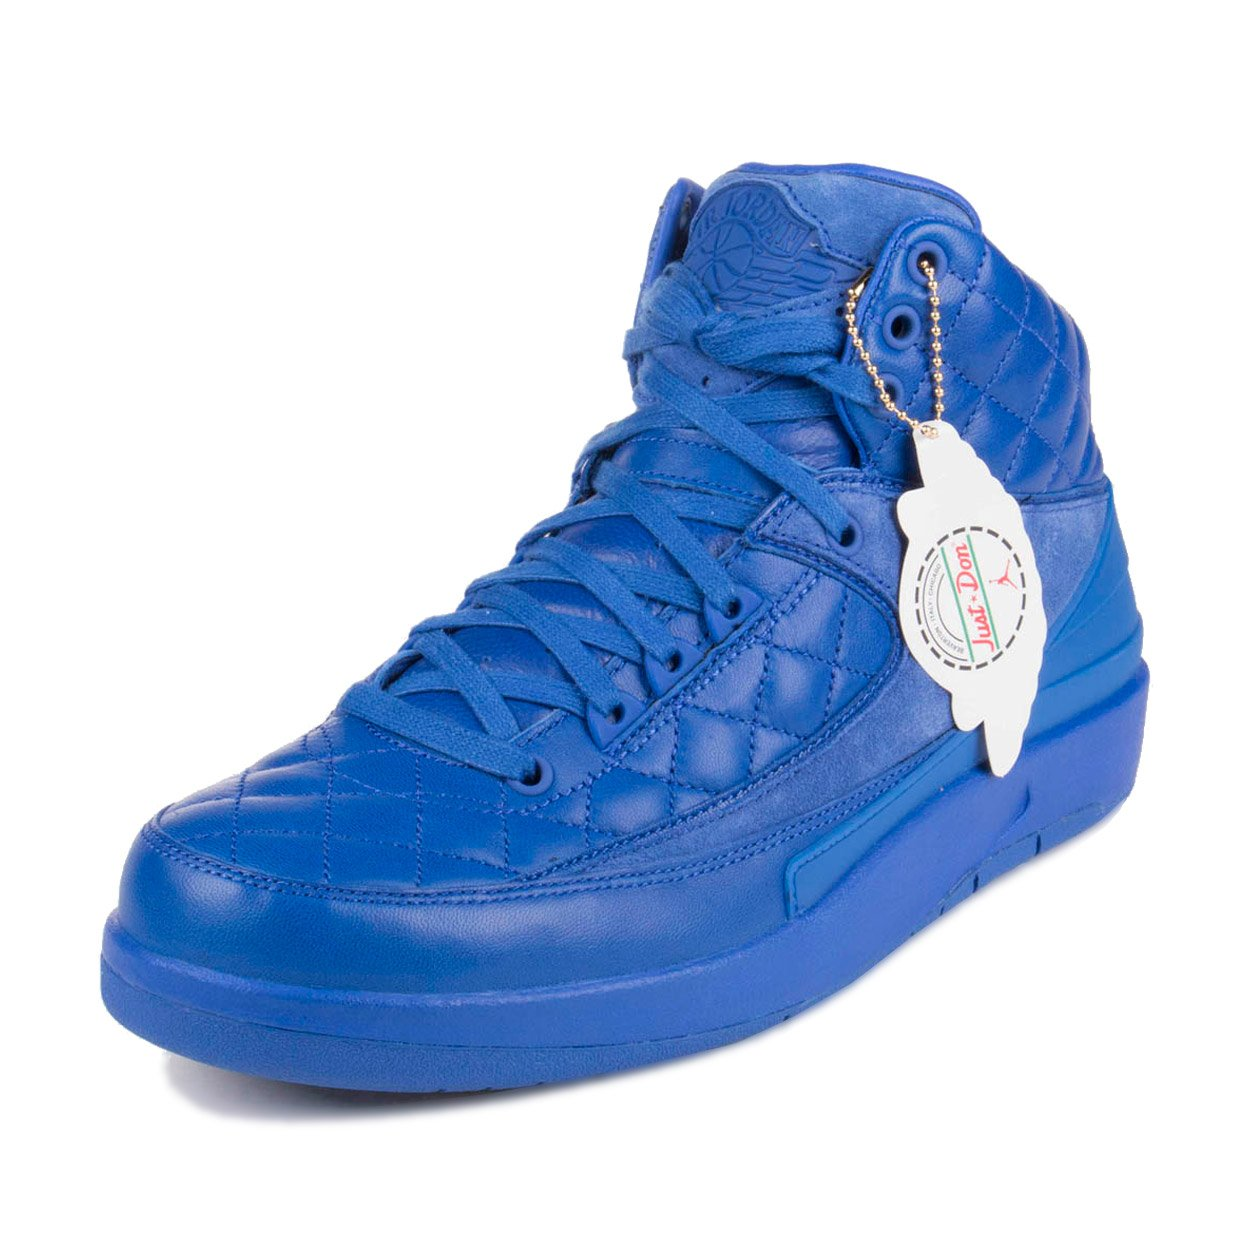 "Nike Mens Jordan 2 Retro ""Don C"" Bright Blue/Metallic Gold-University Red Leather Basketball Shoes"